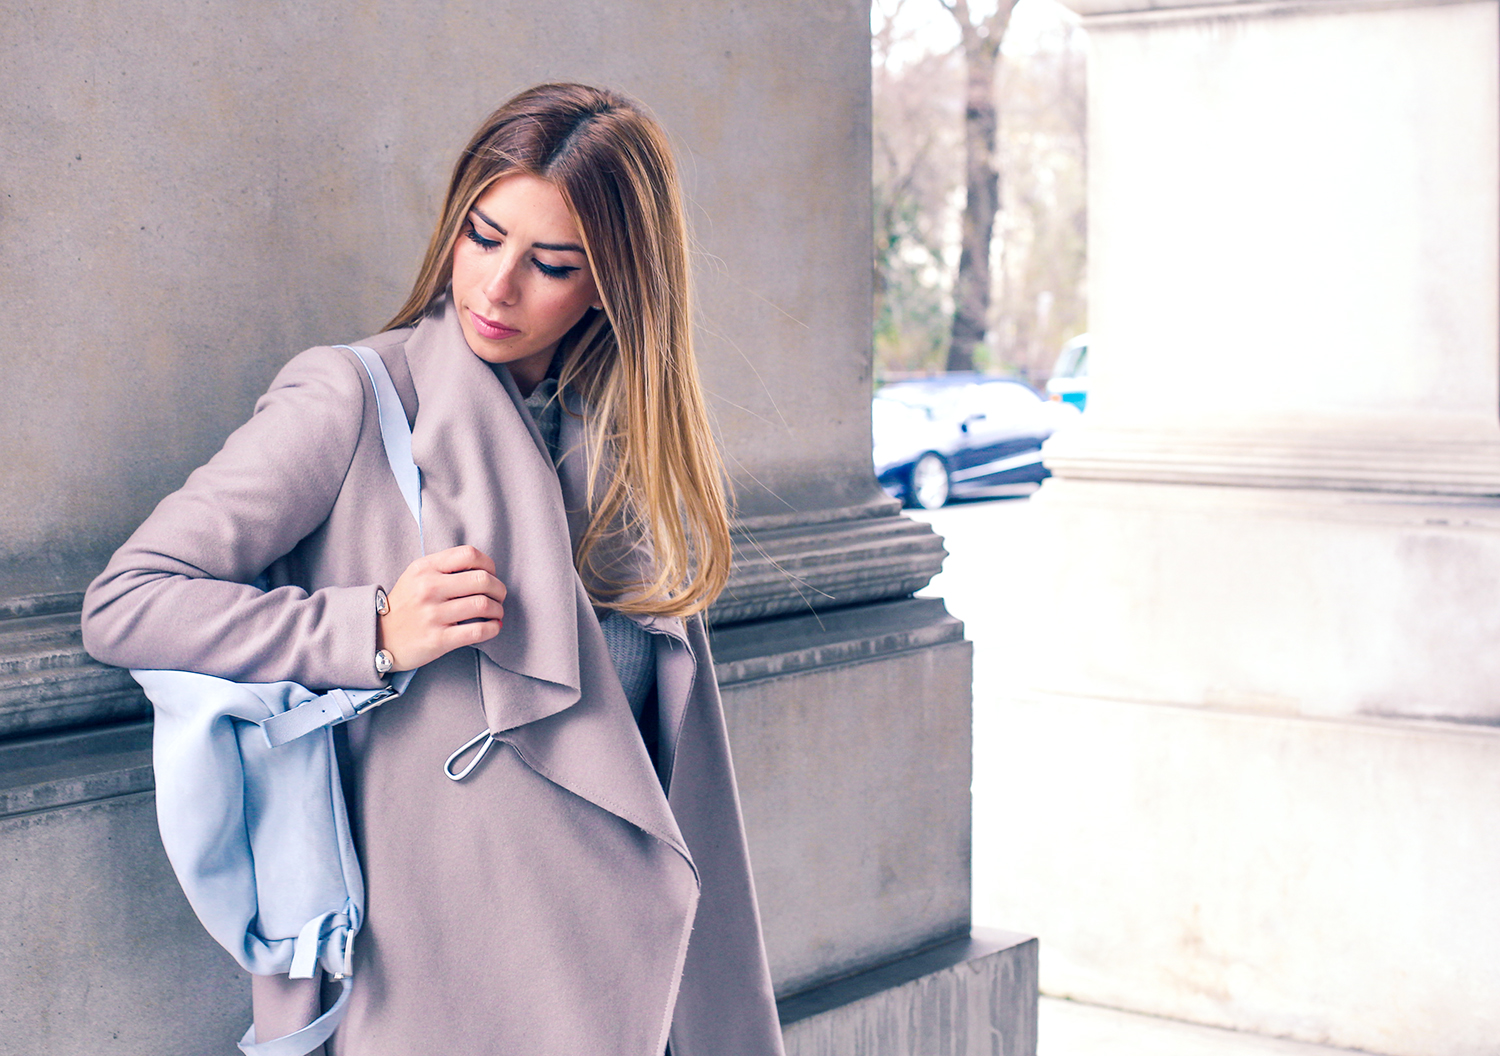 Style_Roulette_Lifestyle_Streetstyle_Winter_Coat_All_Saints_Studio_Dai_Backpack